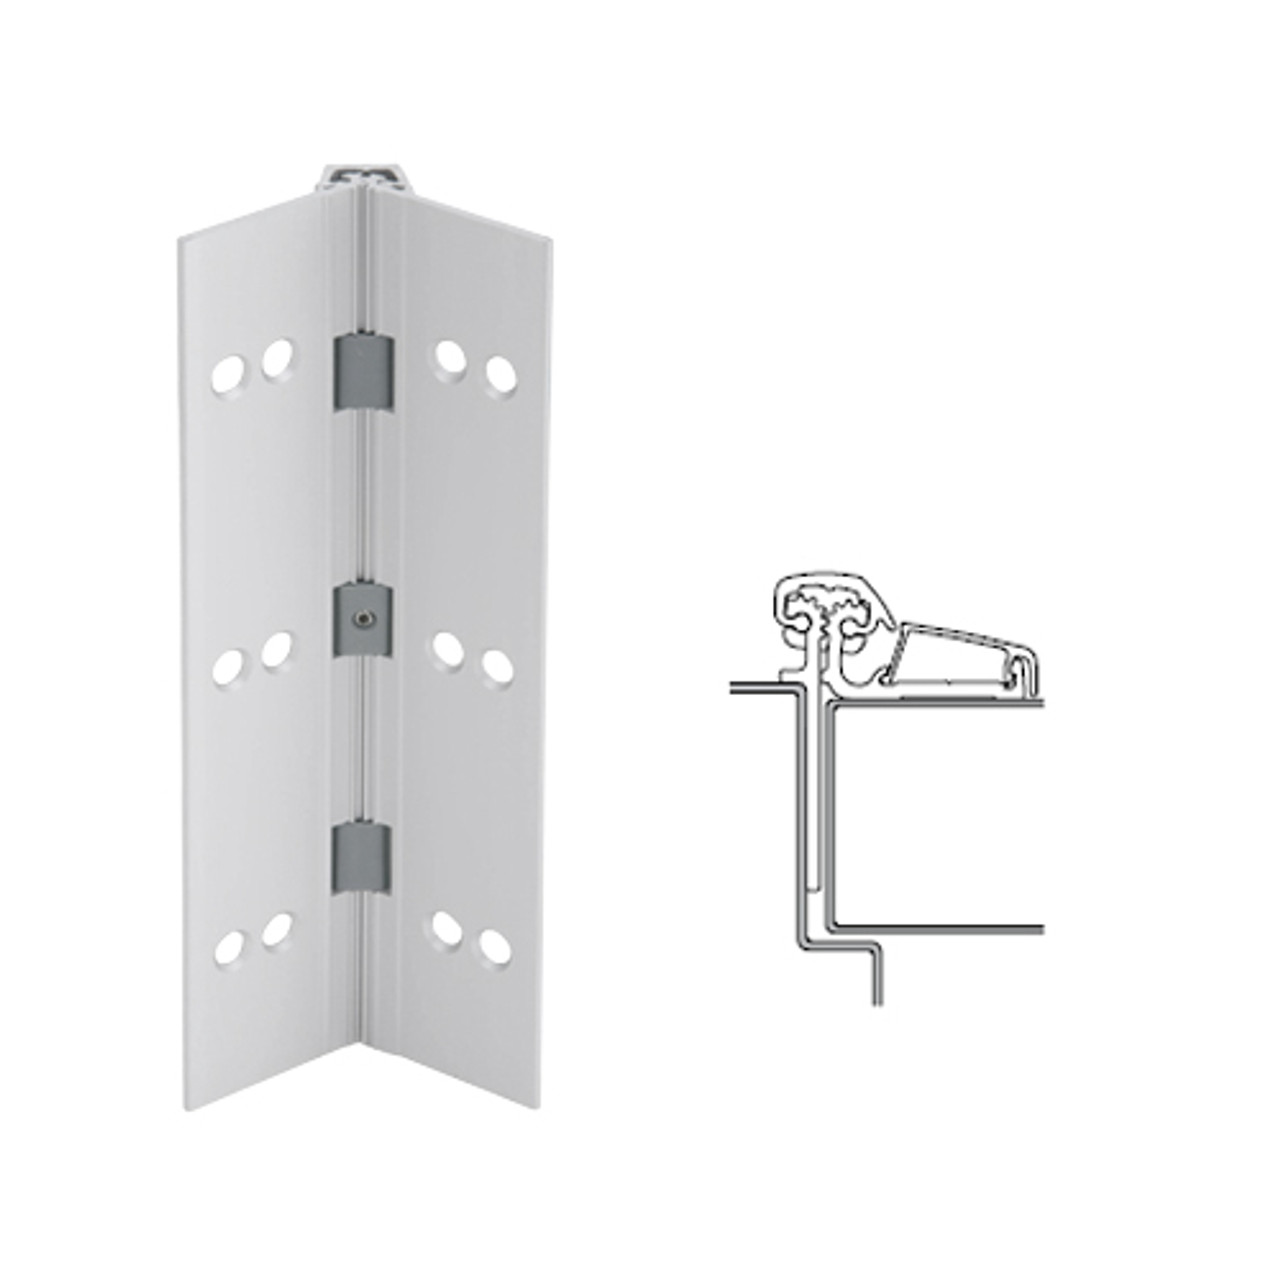 053XY-US28-120-SECWDHM IVES Adjustable Half Surface Continuous Geared Hinges with Security Screws - Hex Pin Drive in Satin Aluminum